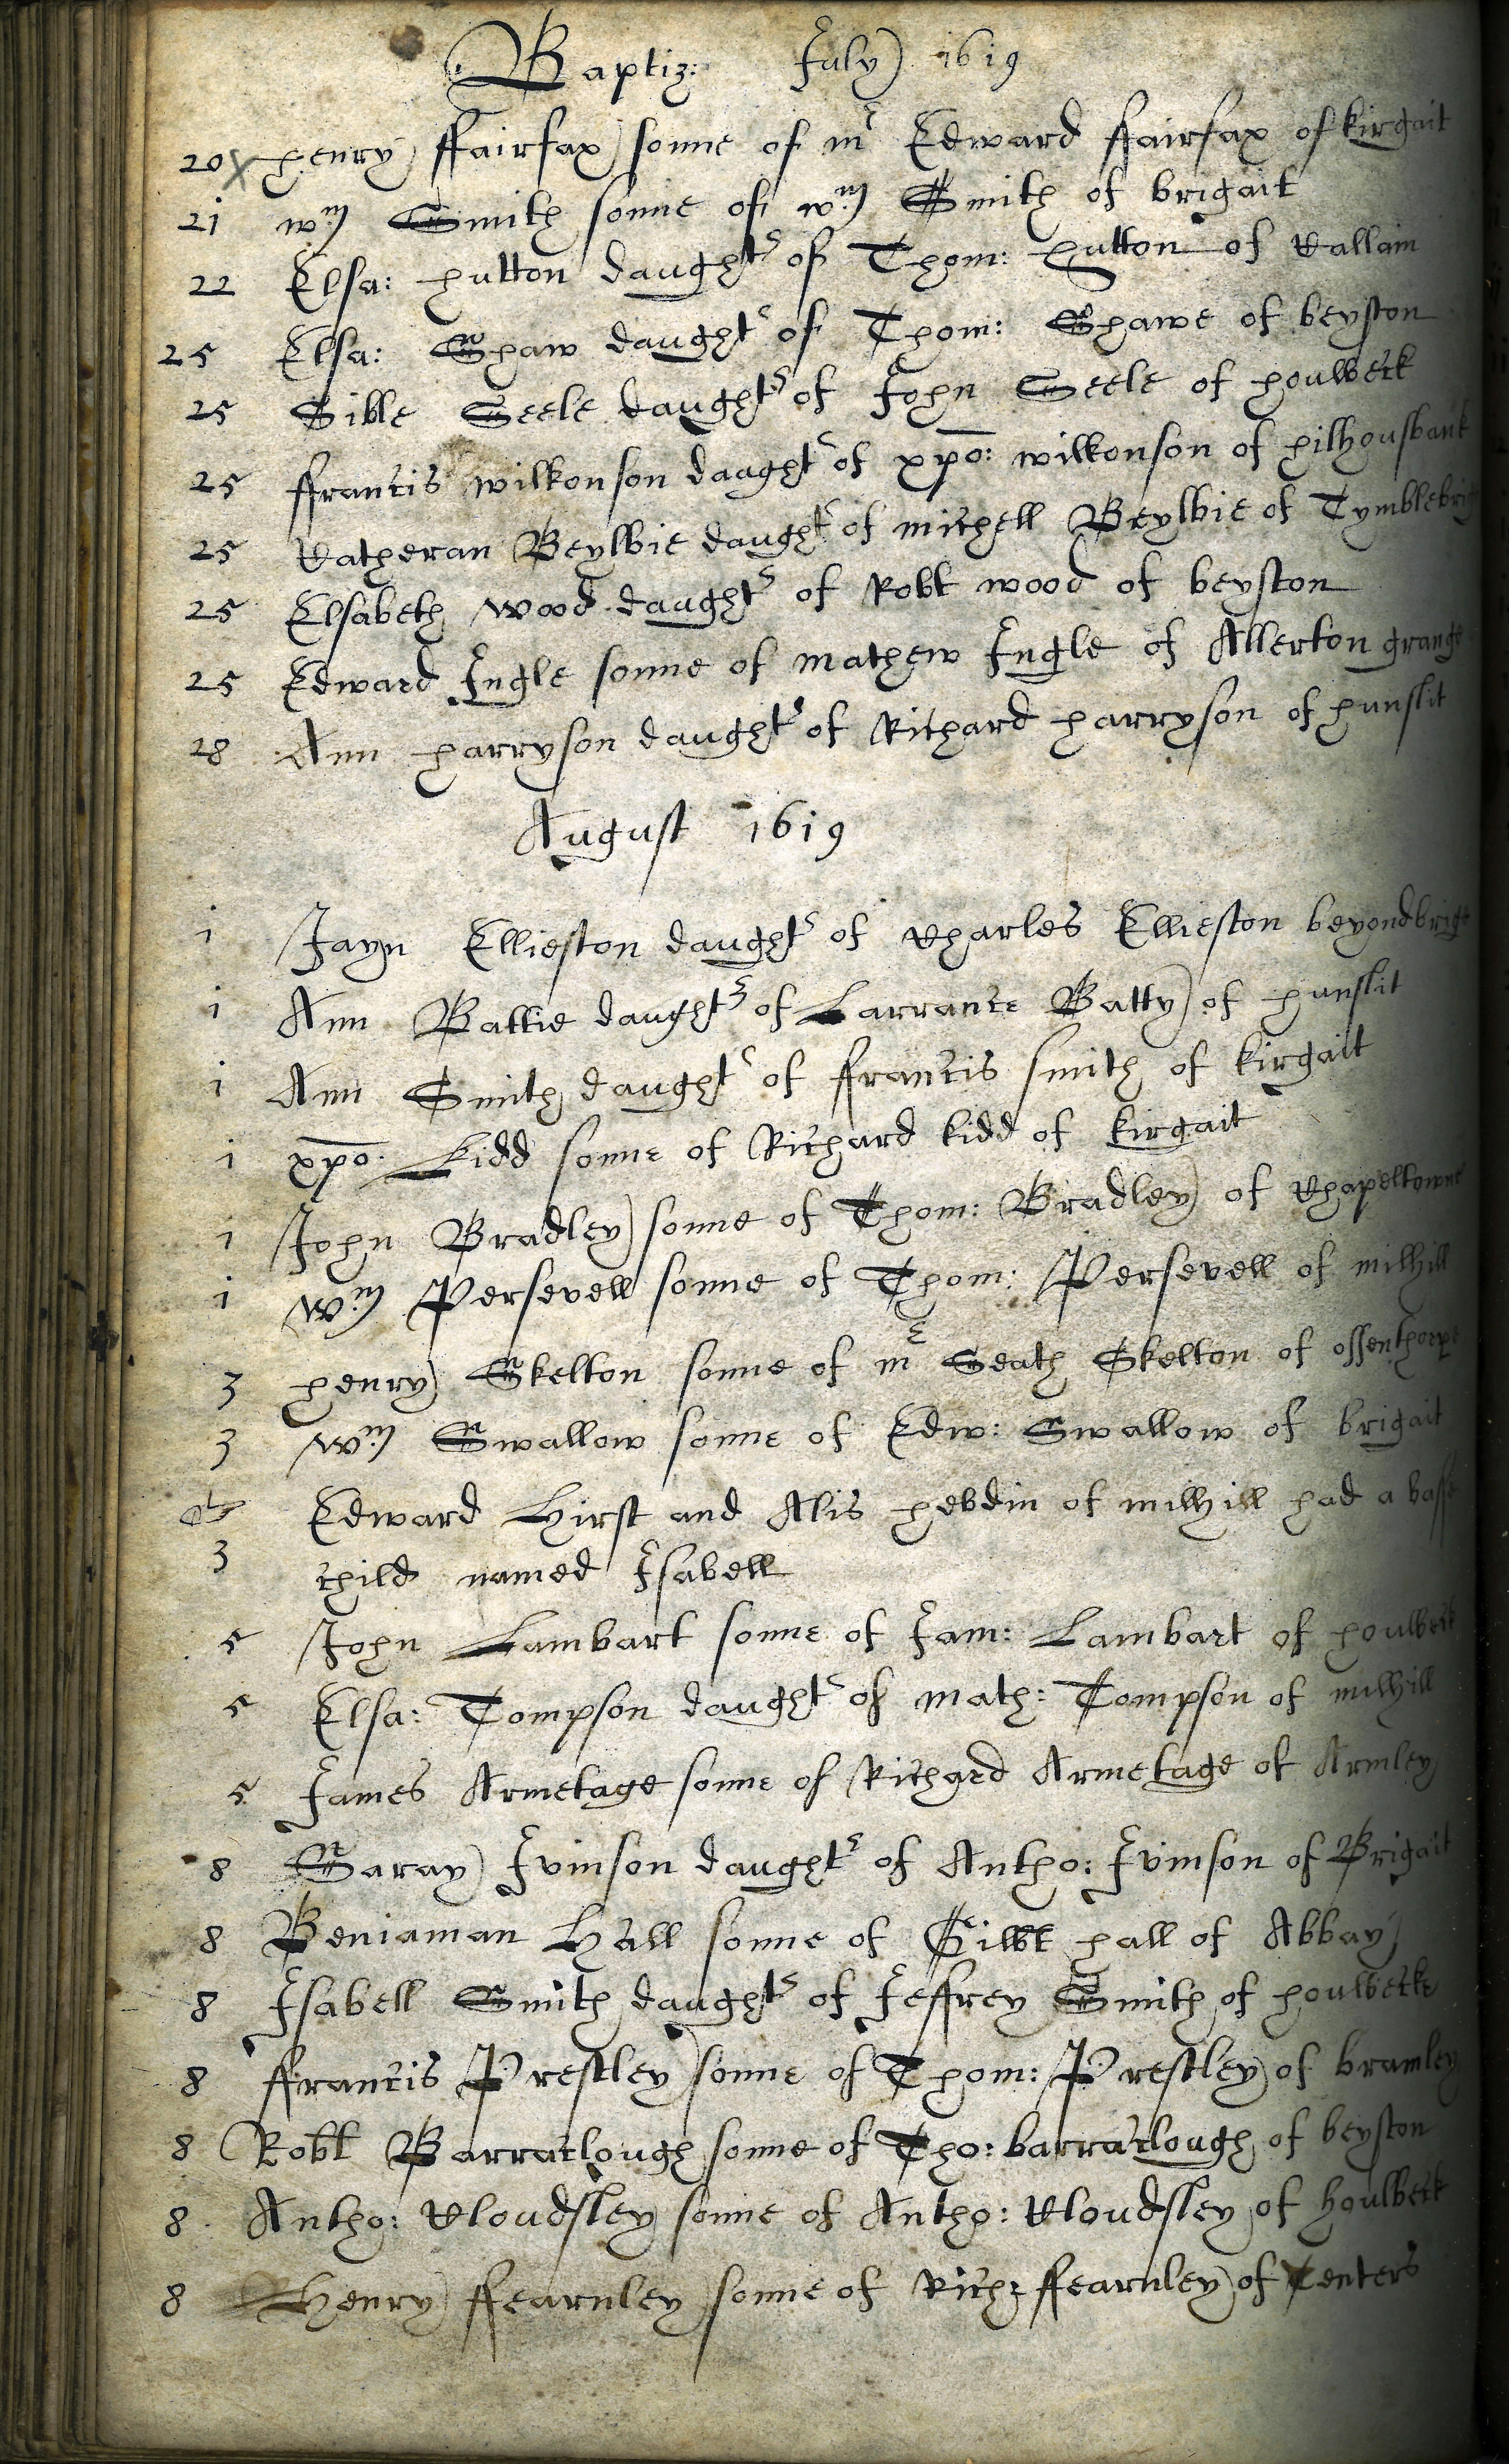 Page showing baptisms at St Peter's Church, Leeds during 1619.